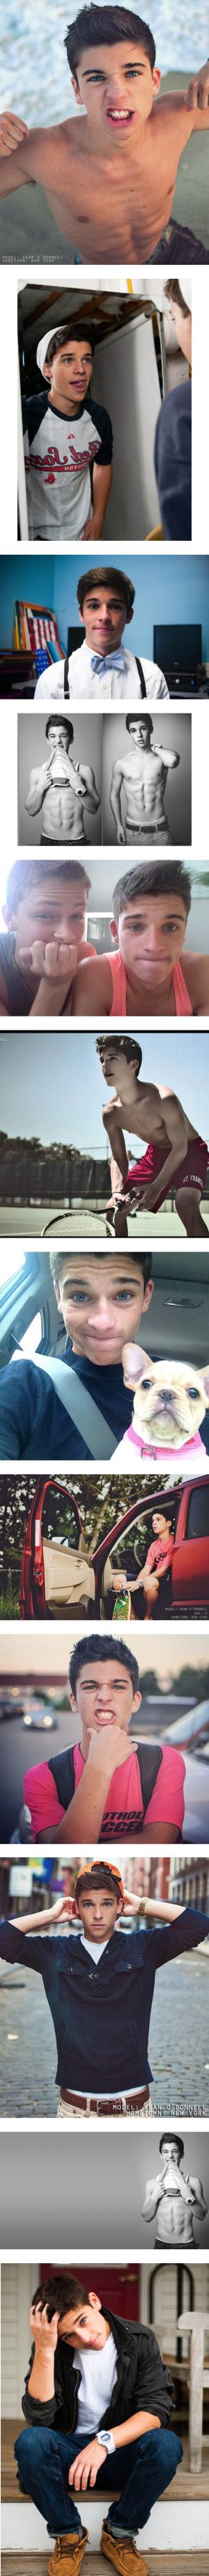 Sean O'Donnell. Haven't heard of you before, but your face is nice. Very nice indeed.